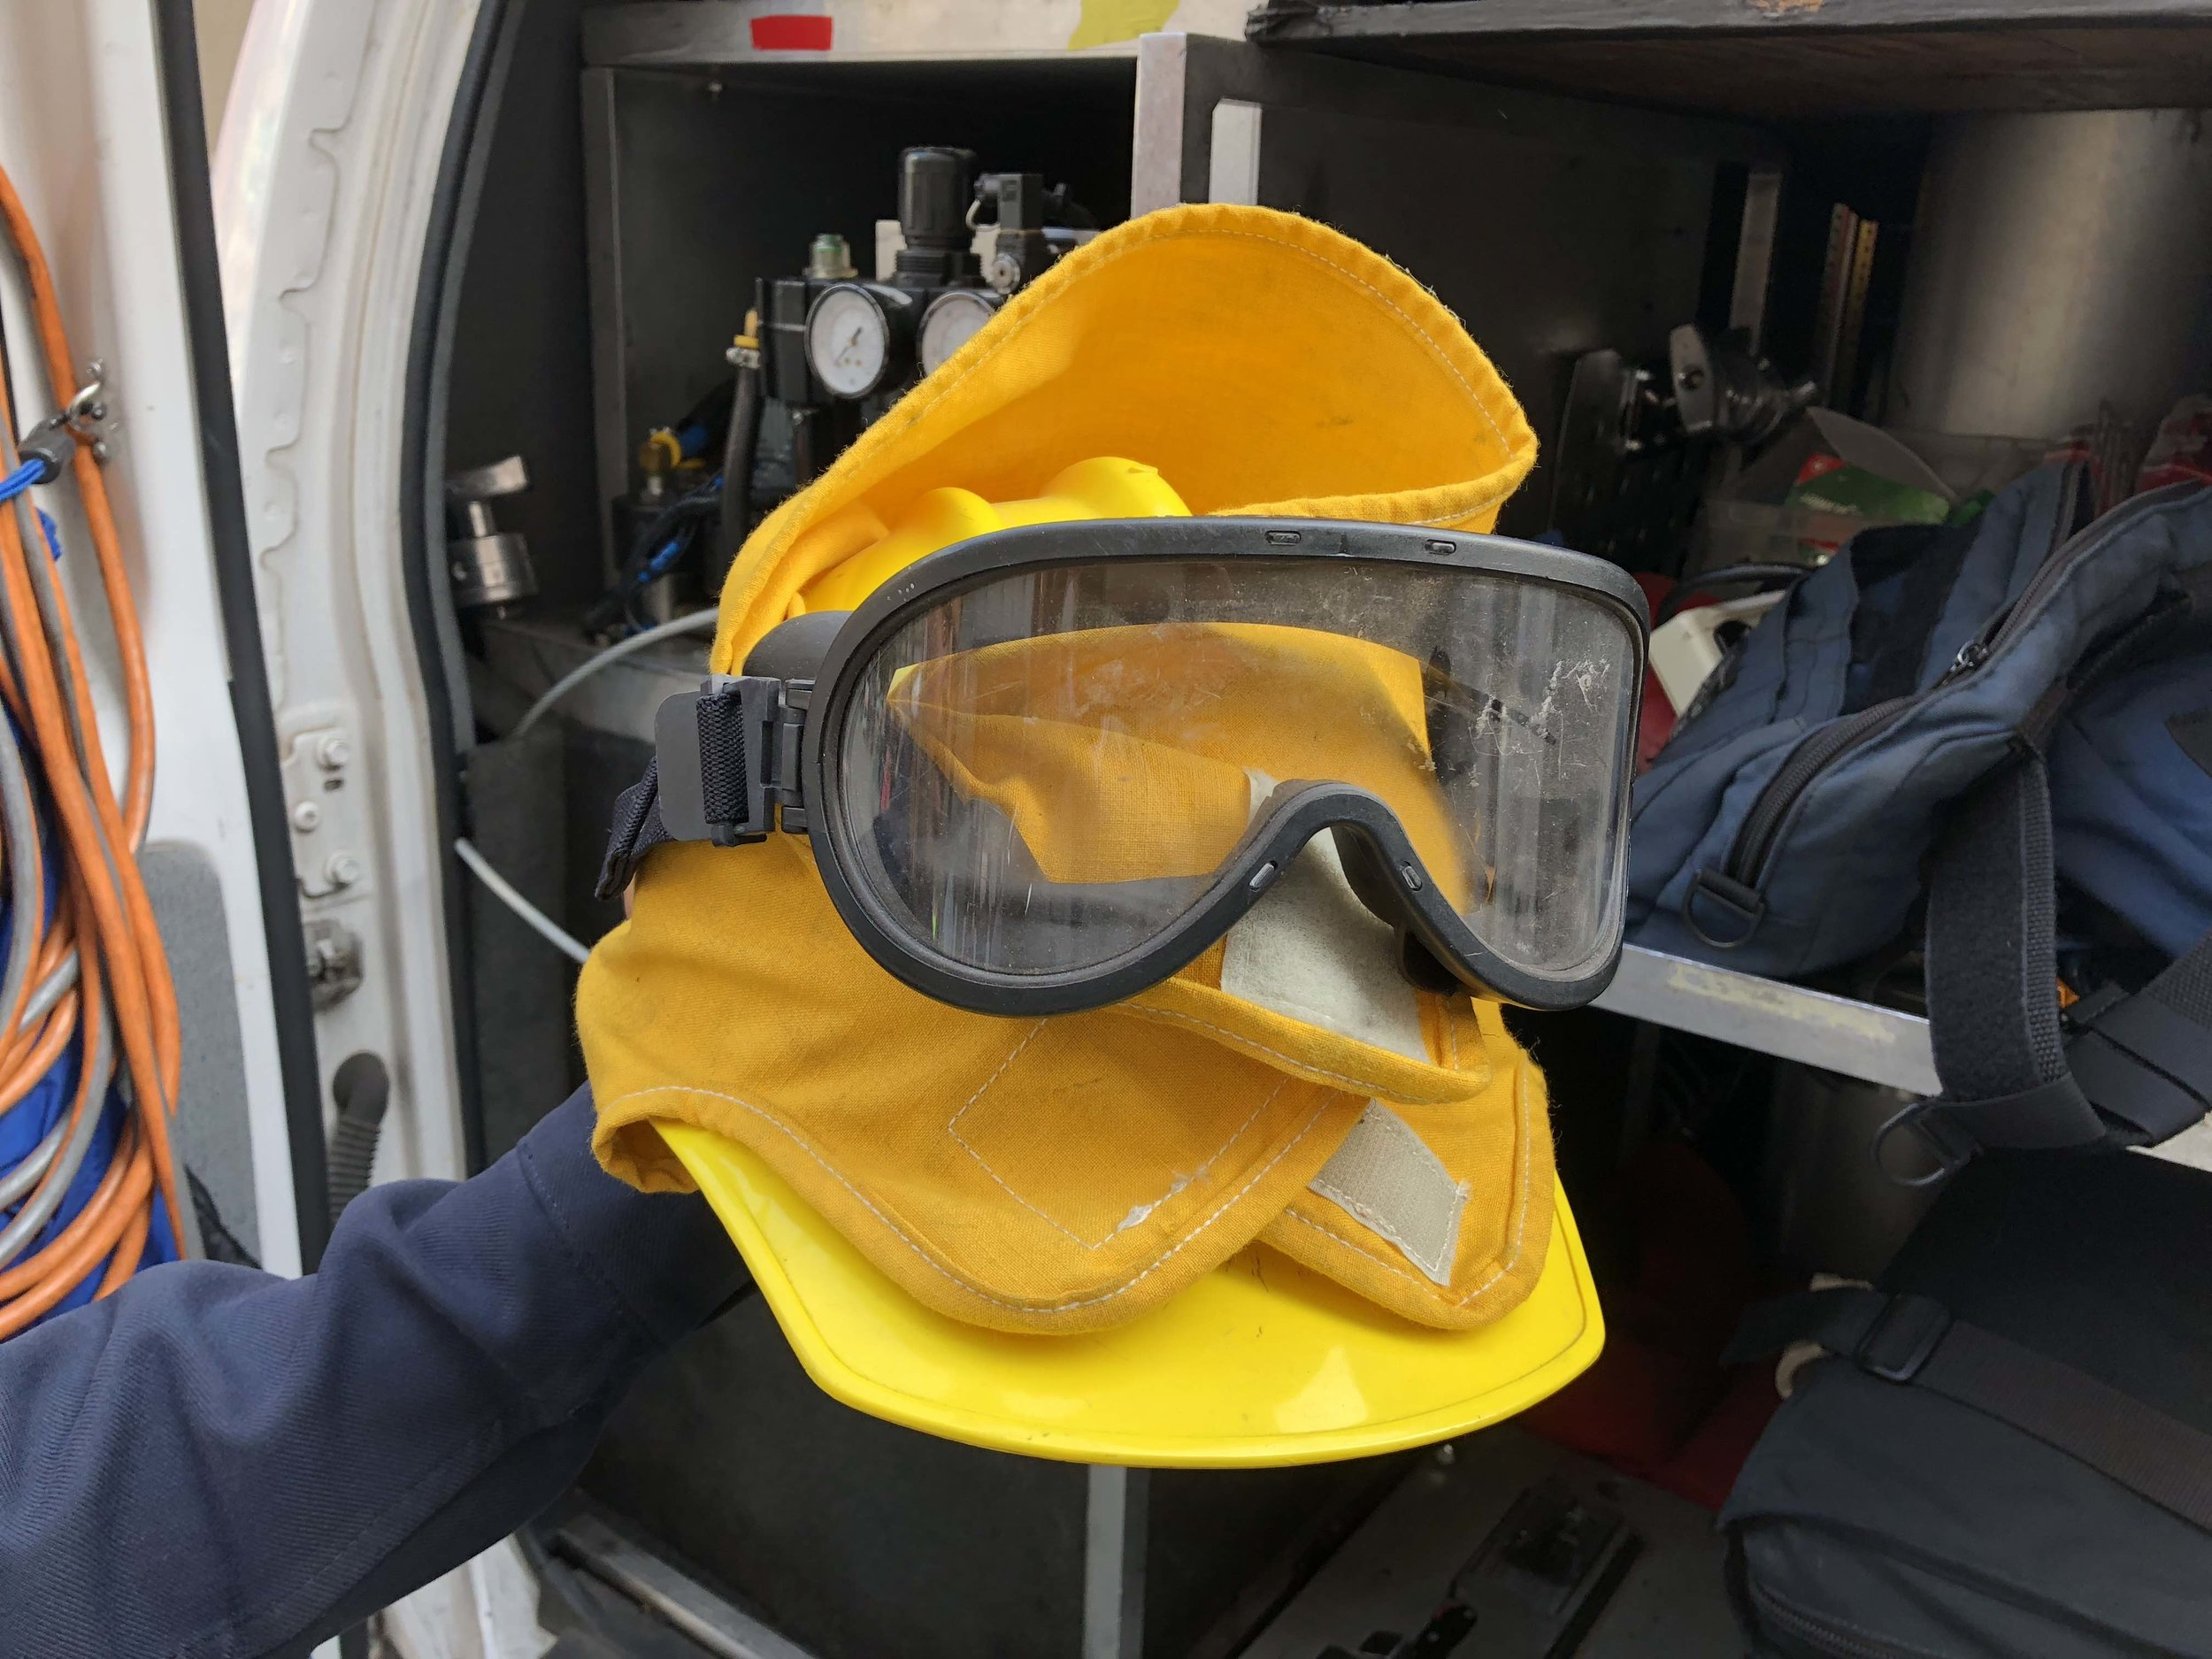 Fire helmet and goggles. In the summer, fires are big news.